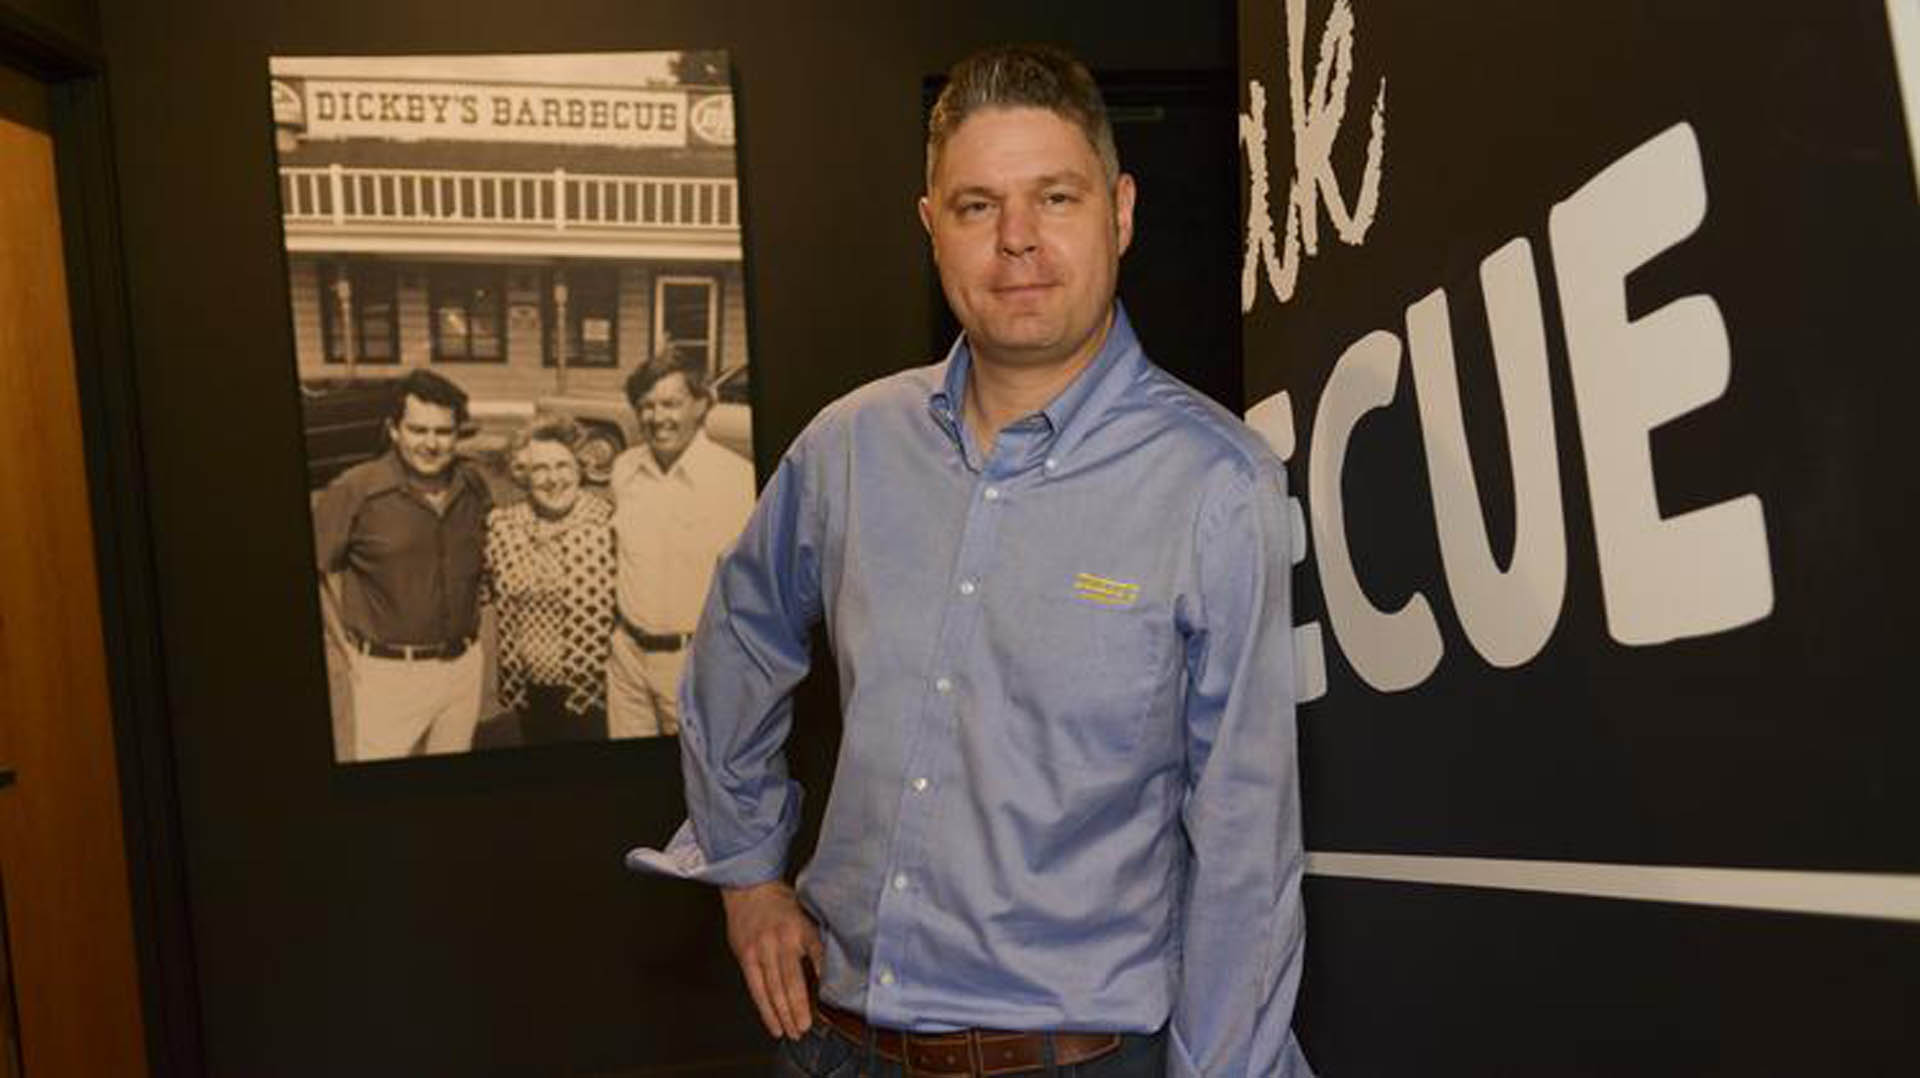 Q&A with Dickey's CEO Roland Dickey, Jr.